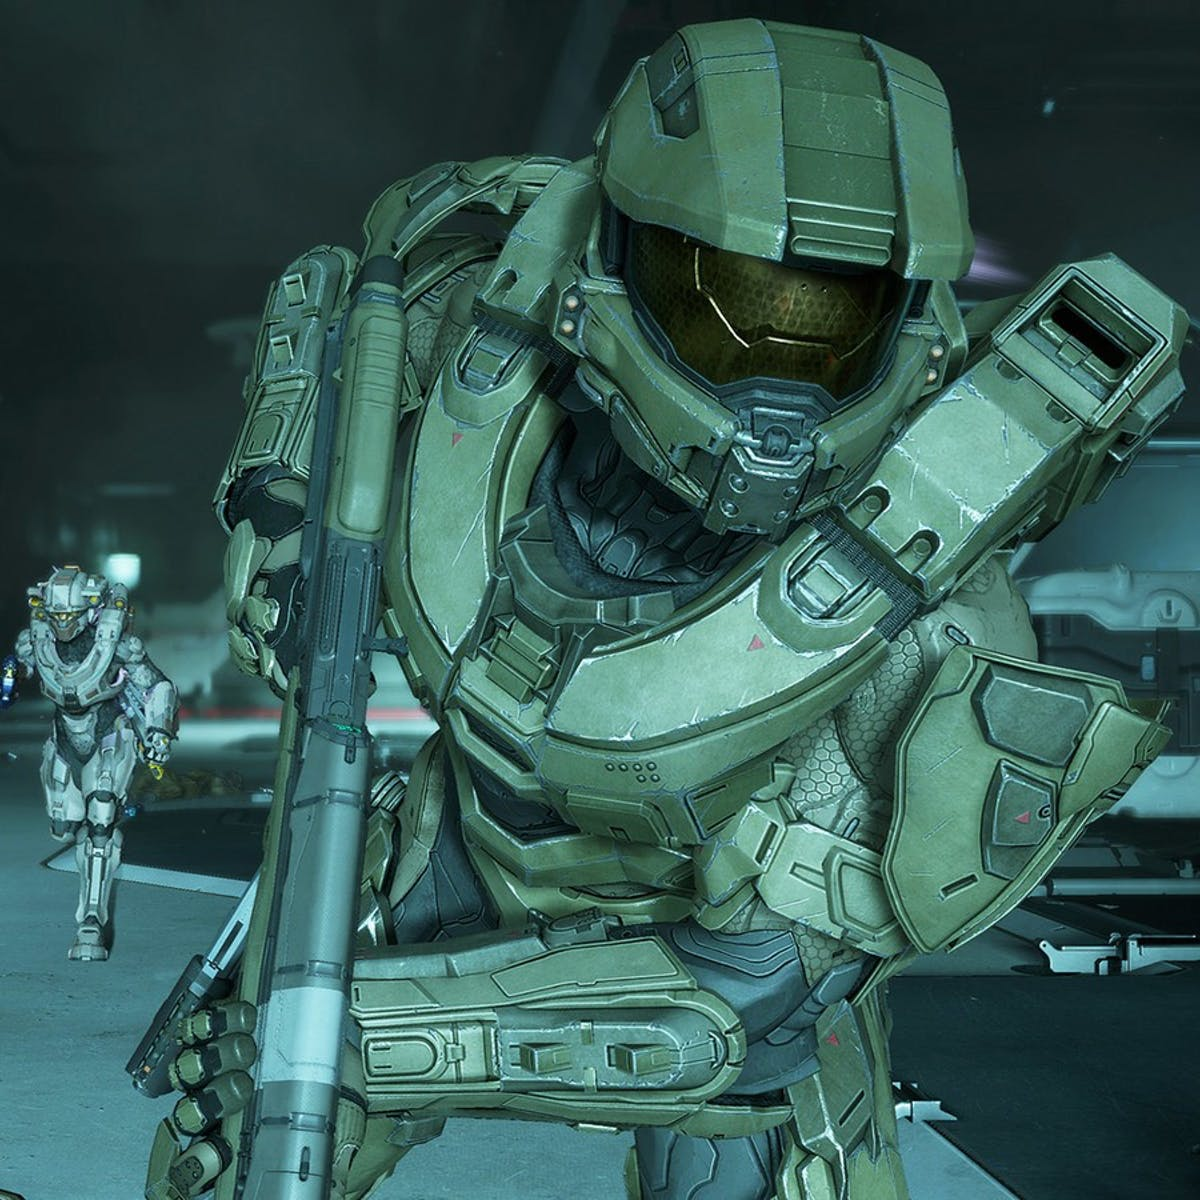 Halo 6 Release Date Rumors: Everything We're Hoping to Hear at E3 2018